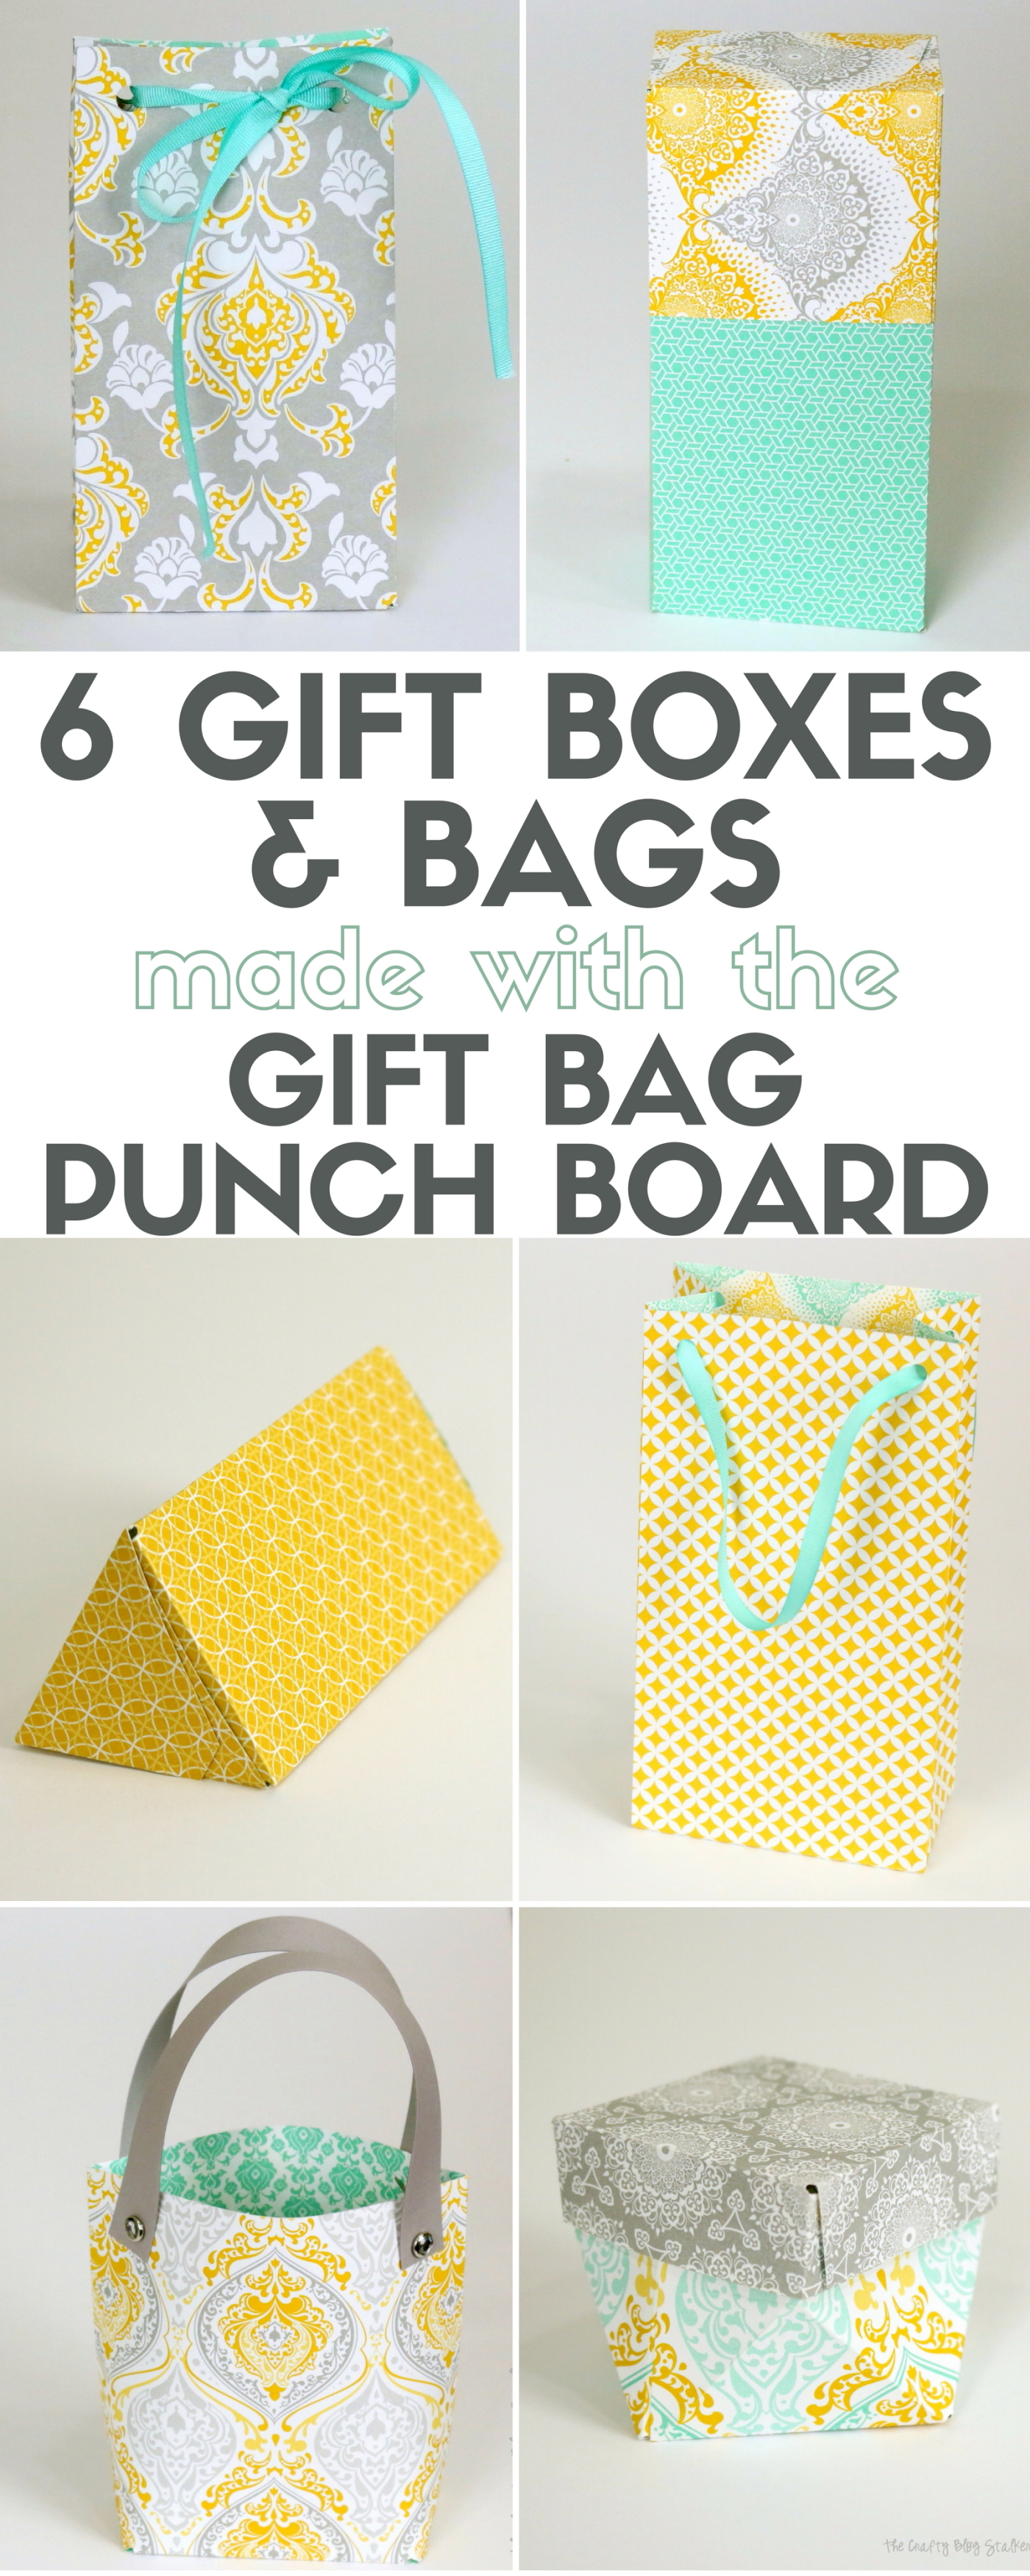 How To Make 6 Diffe Gift Bo And Bags With The Bag Punch Board